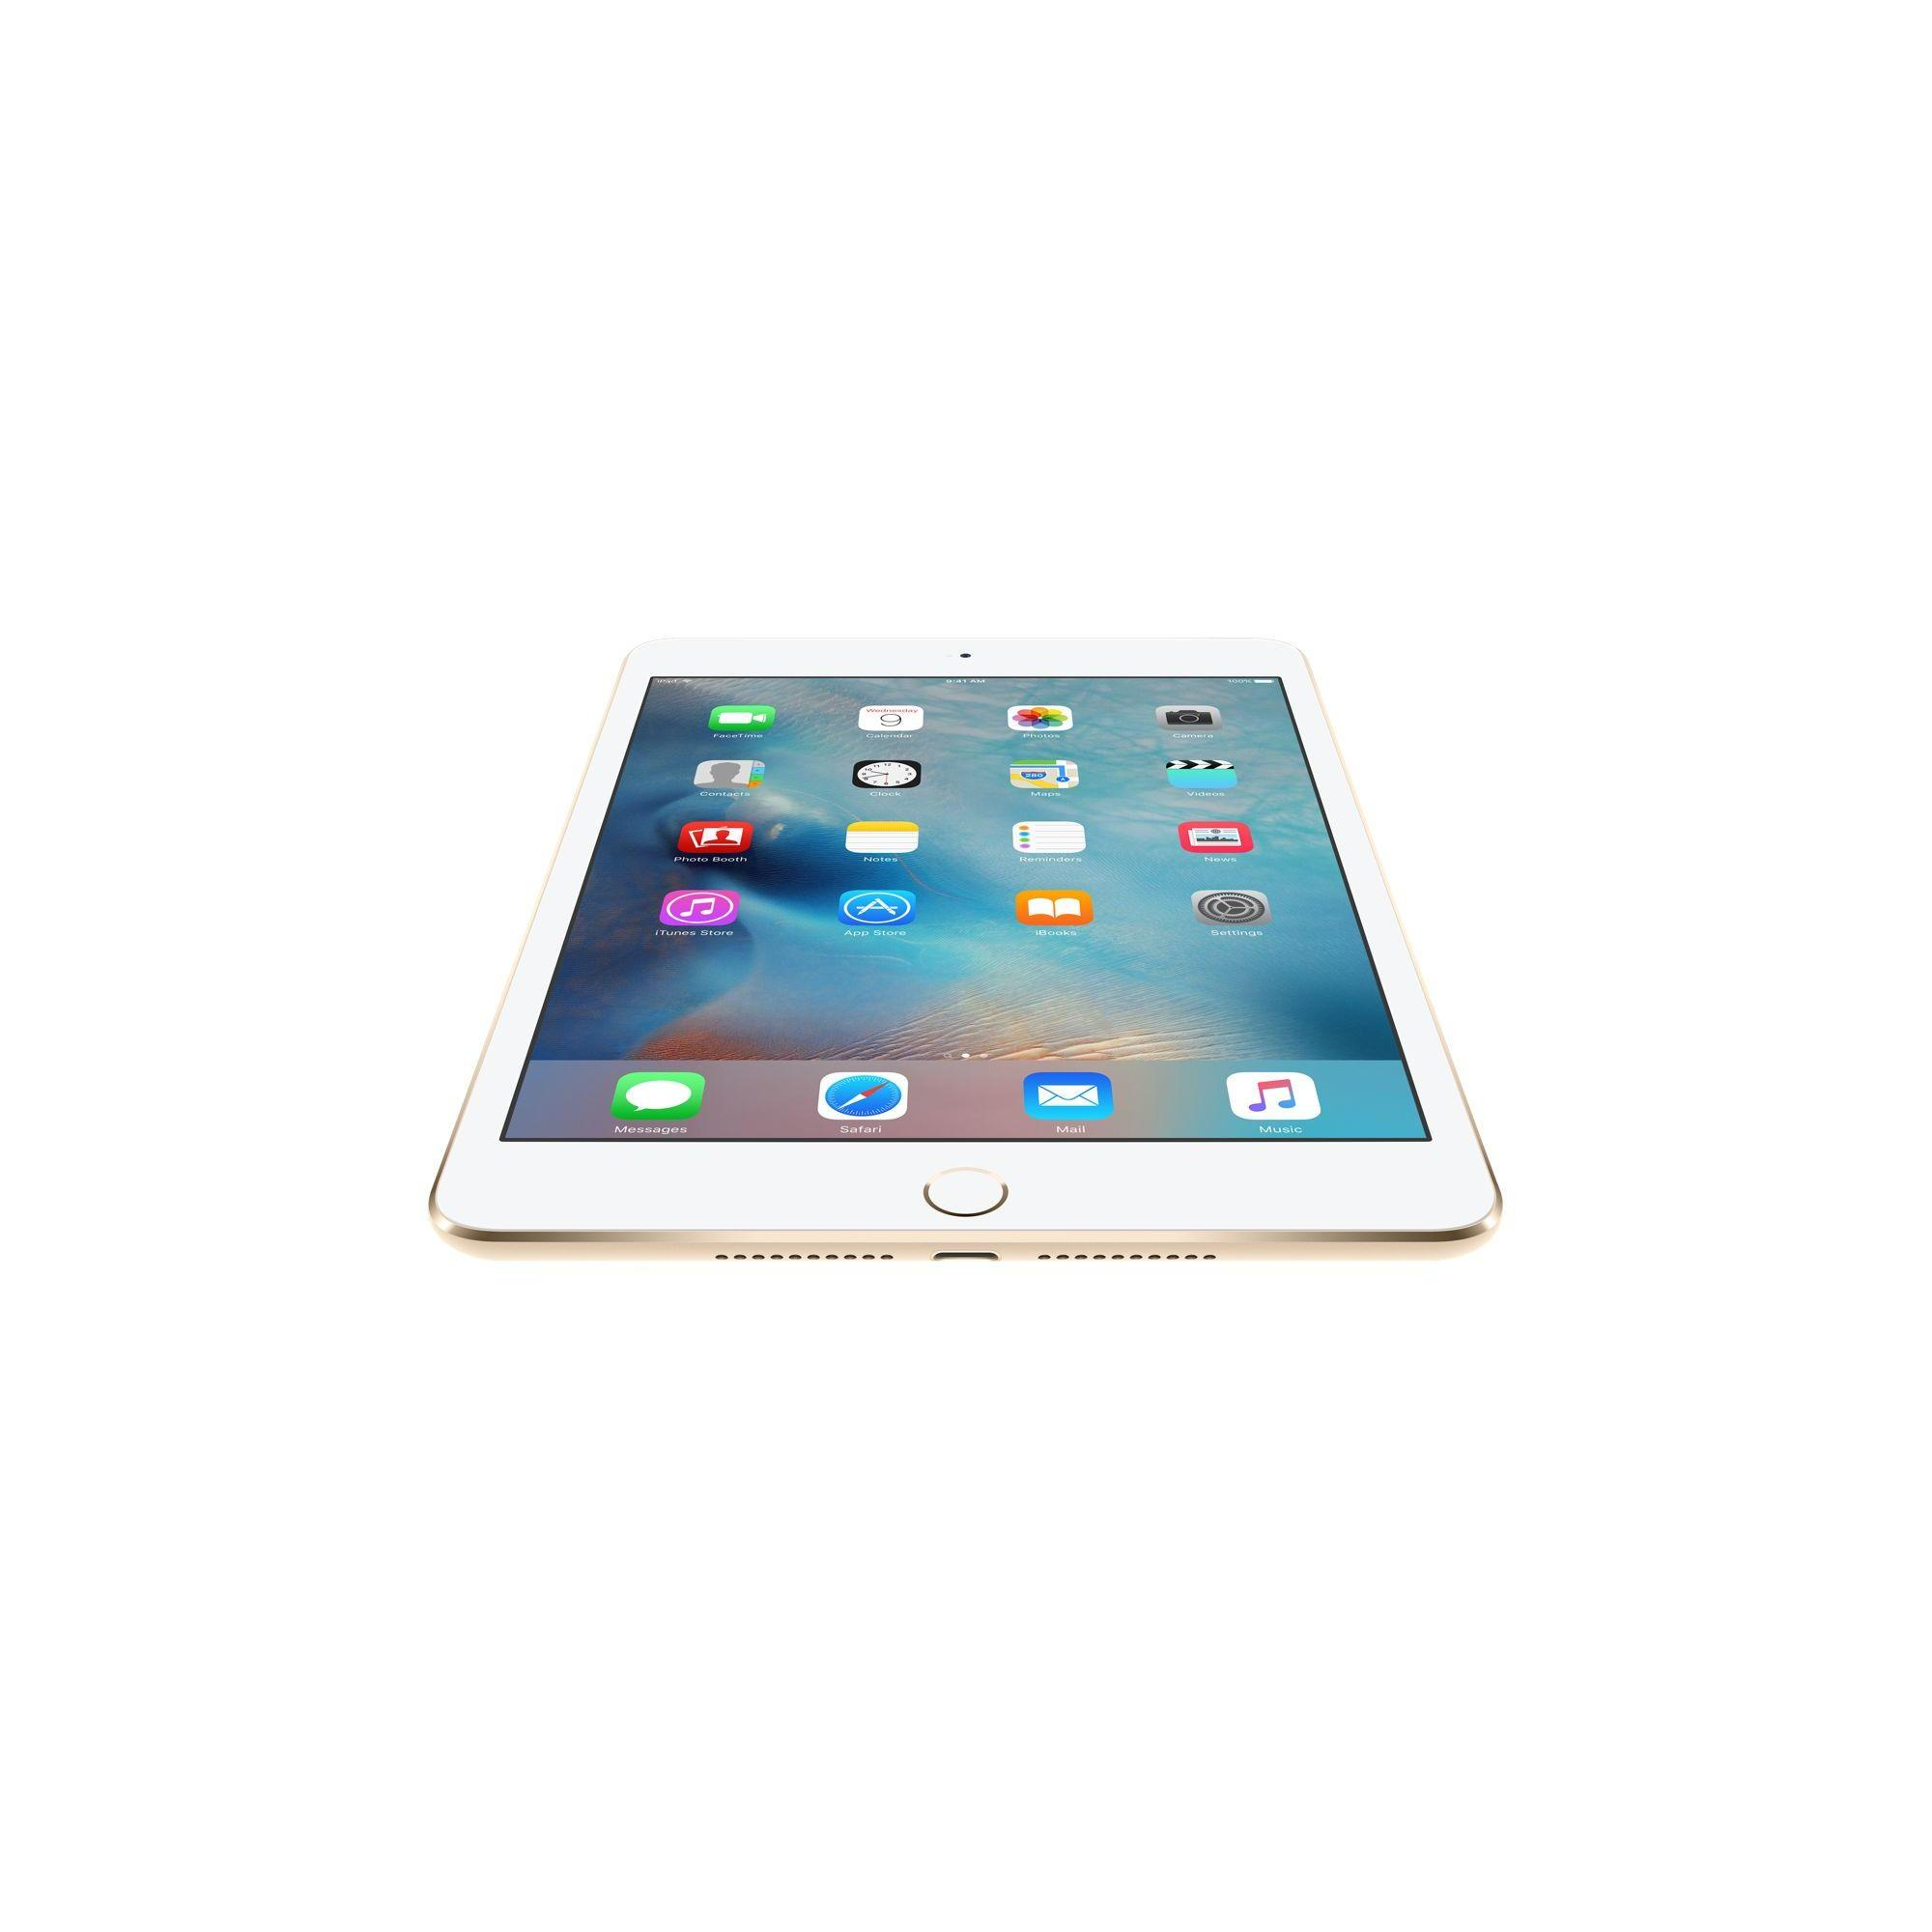 ipad mini 4 64gb lte wlan gold ohne vertrag. Black Bedroom Furniture Sets. Home Design Ideas